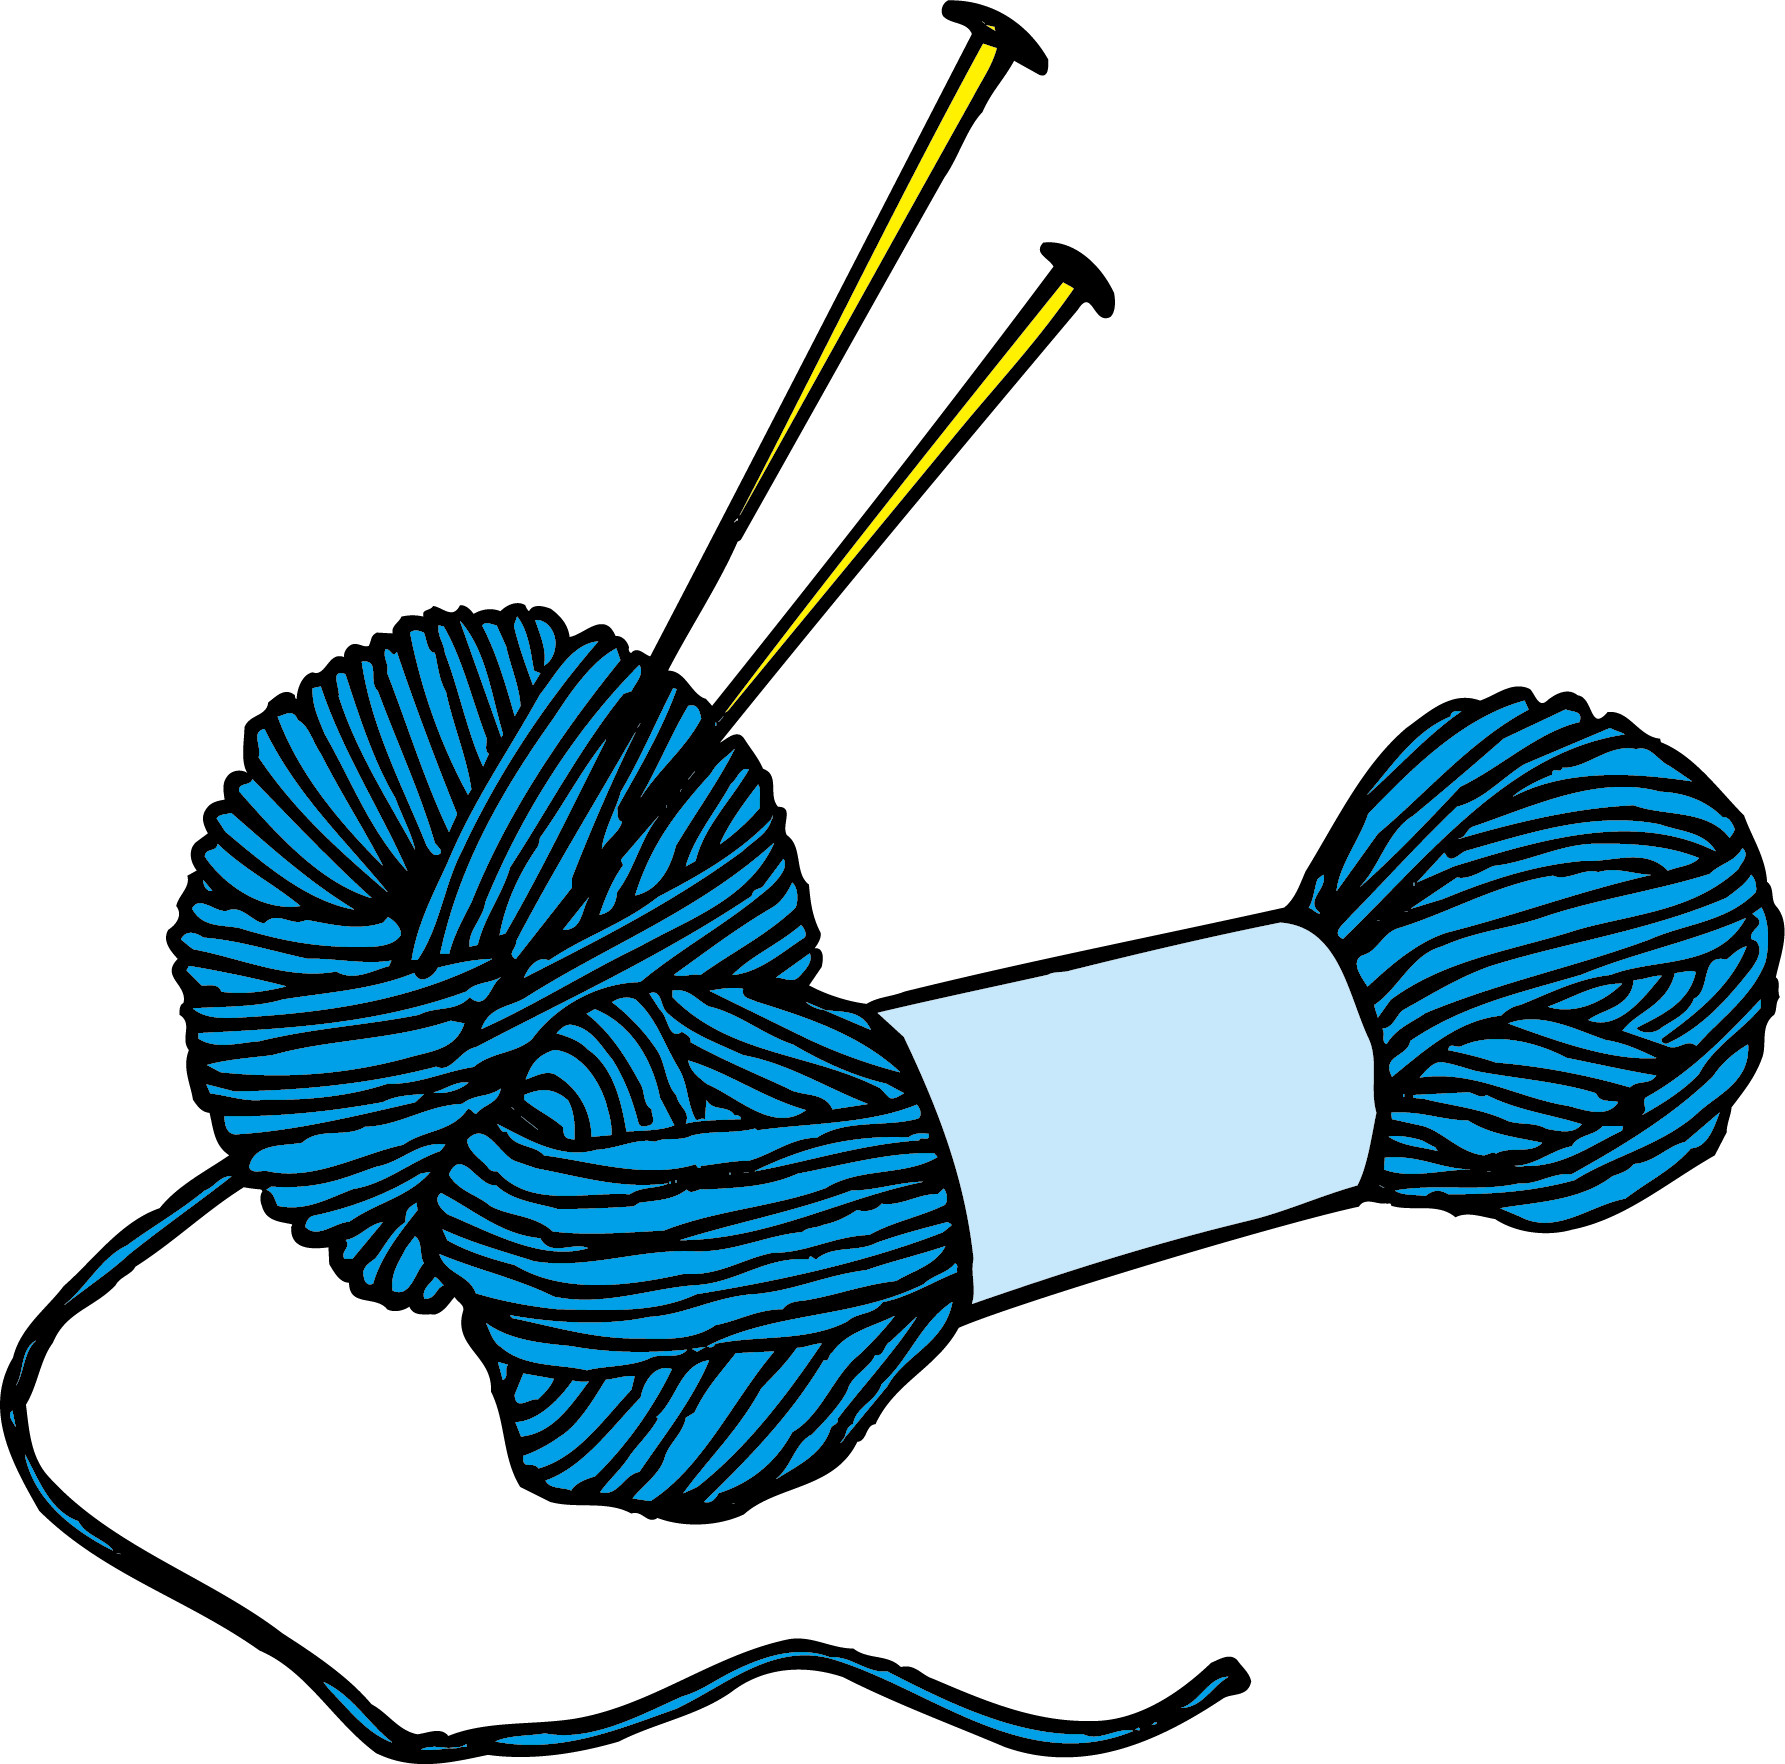 Crochet clipart yarn ball. Wool knitting clip art